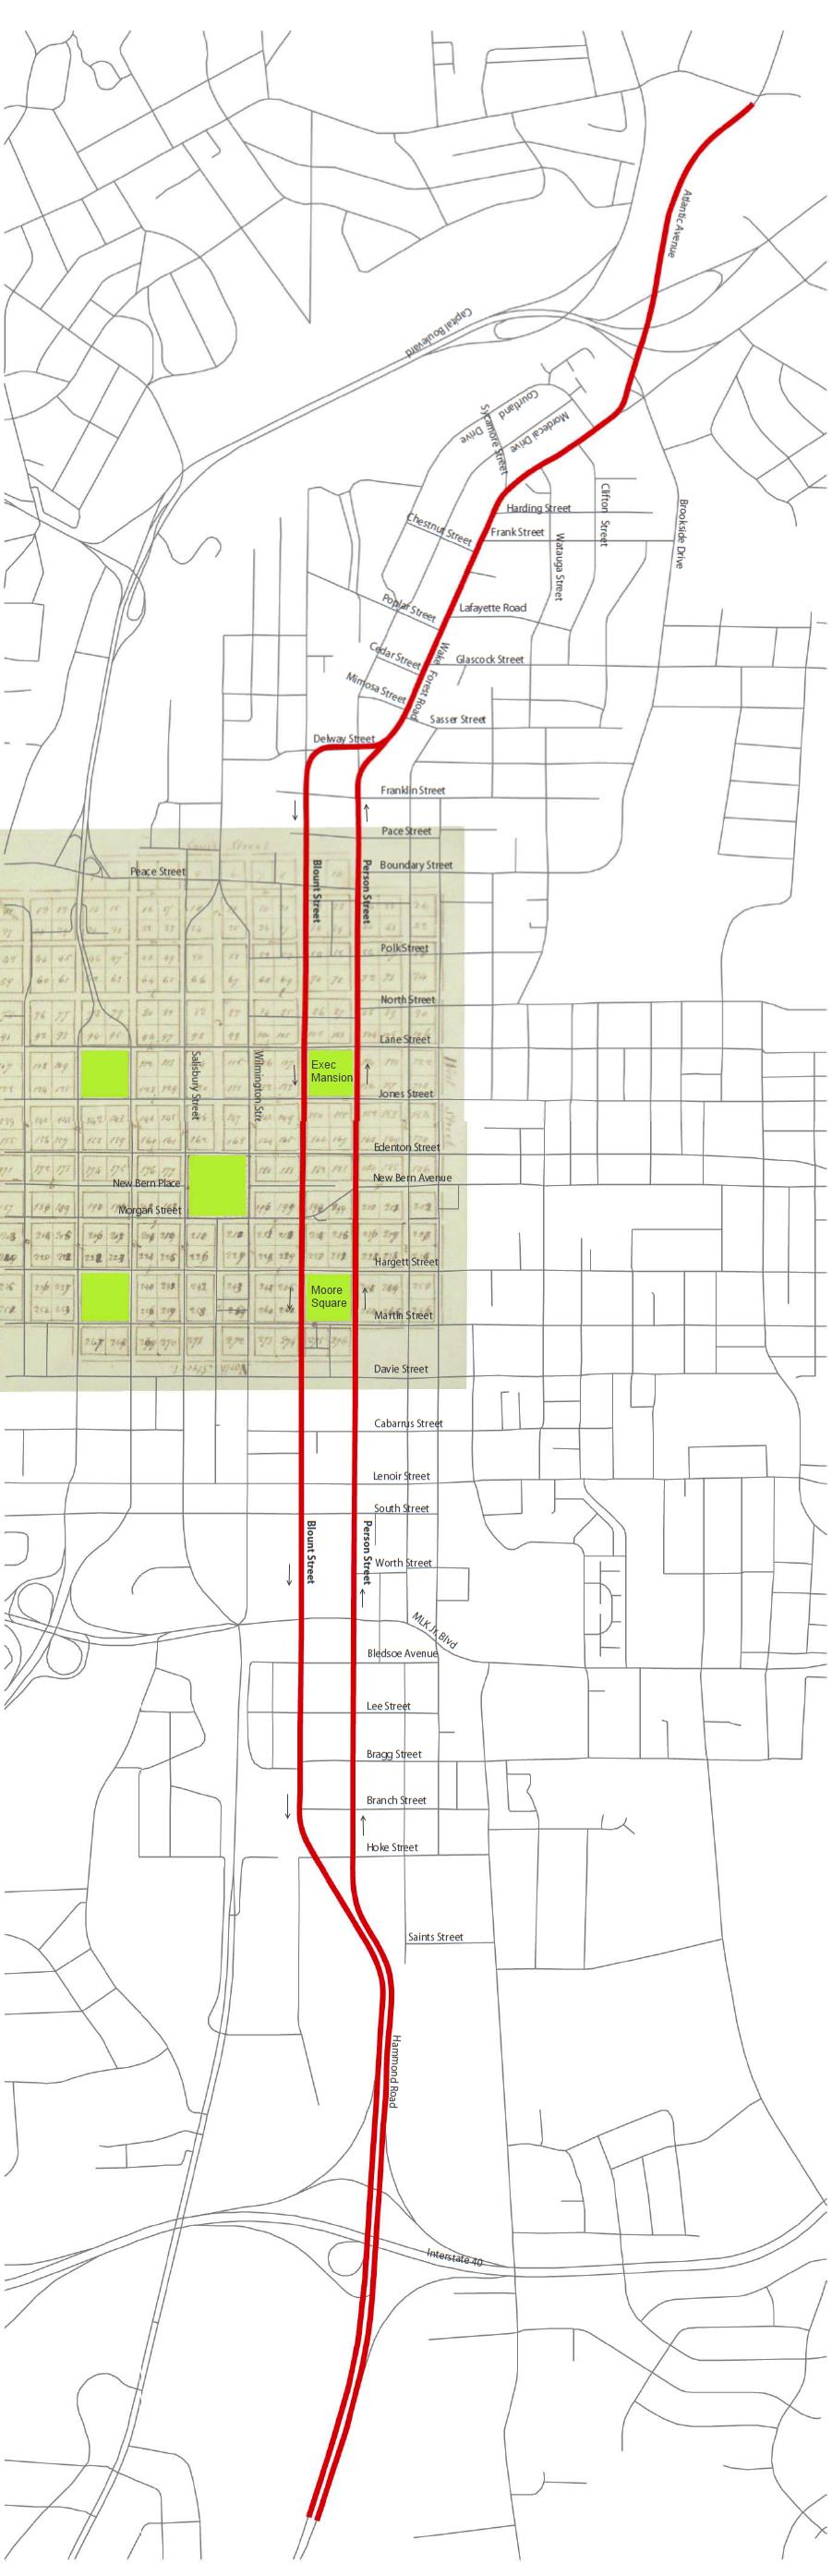 Map of the Blount/Person Street Corridor Study